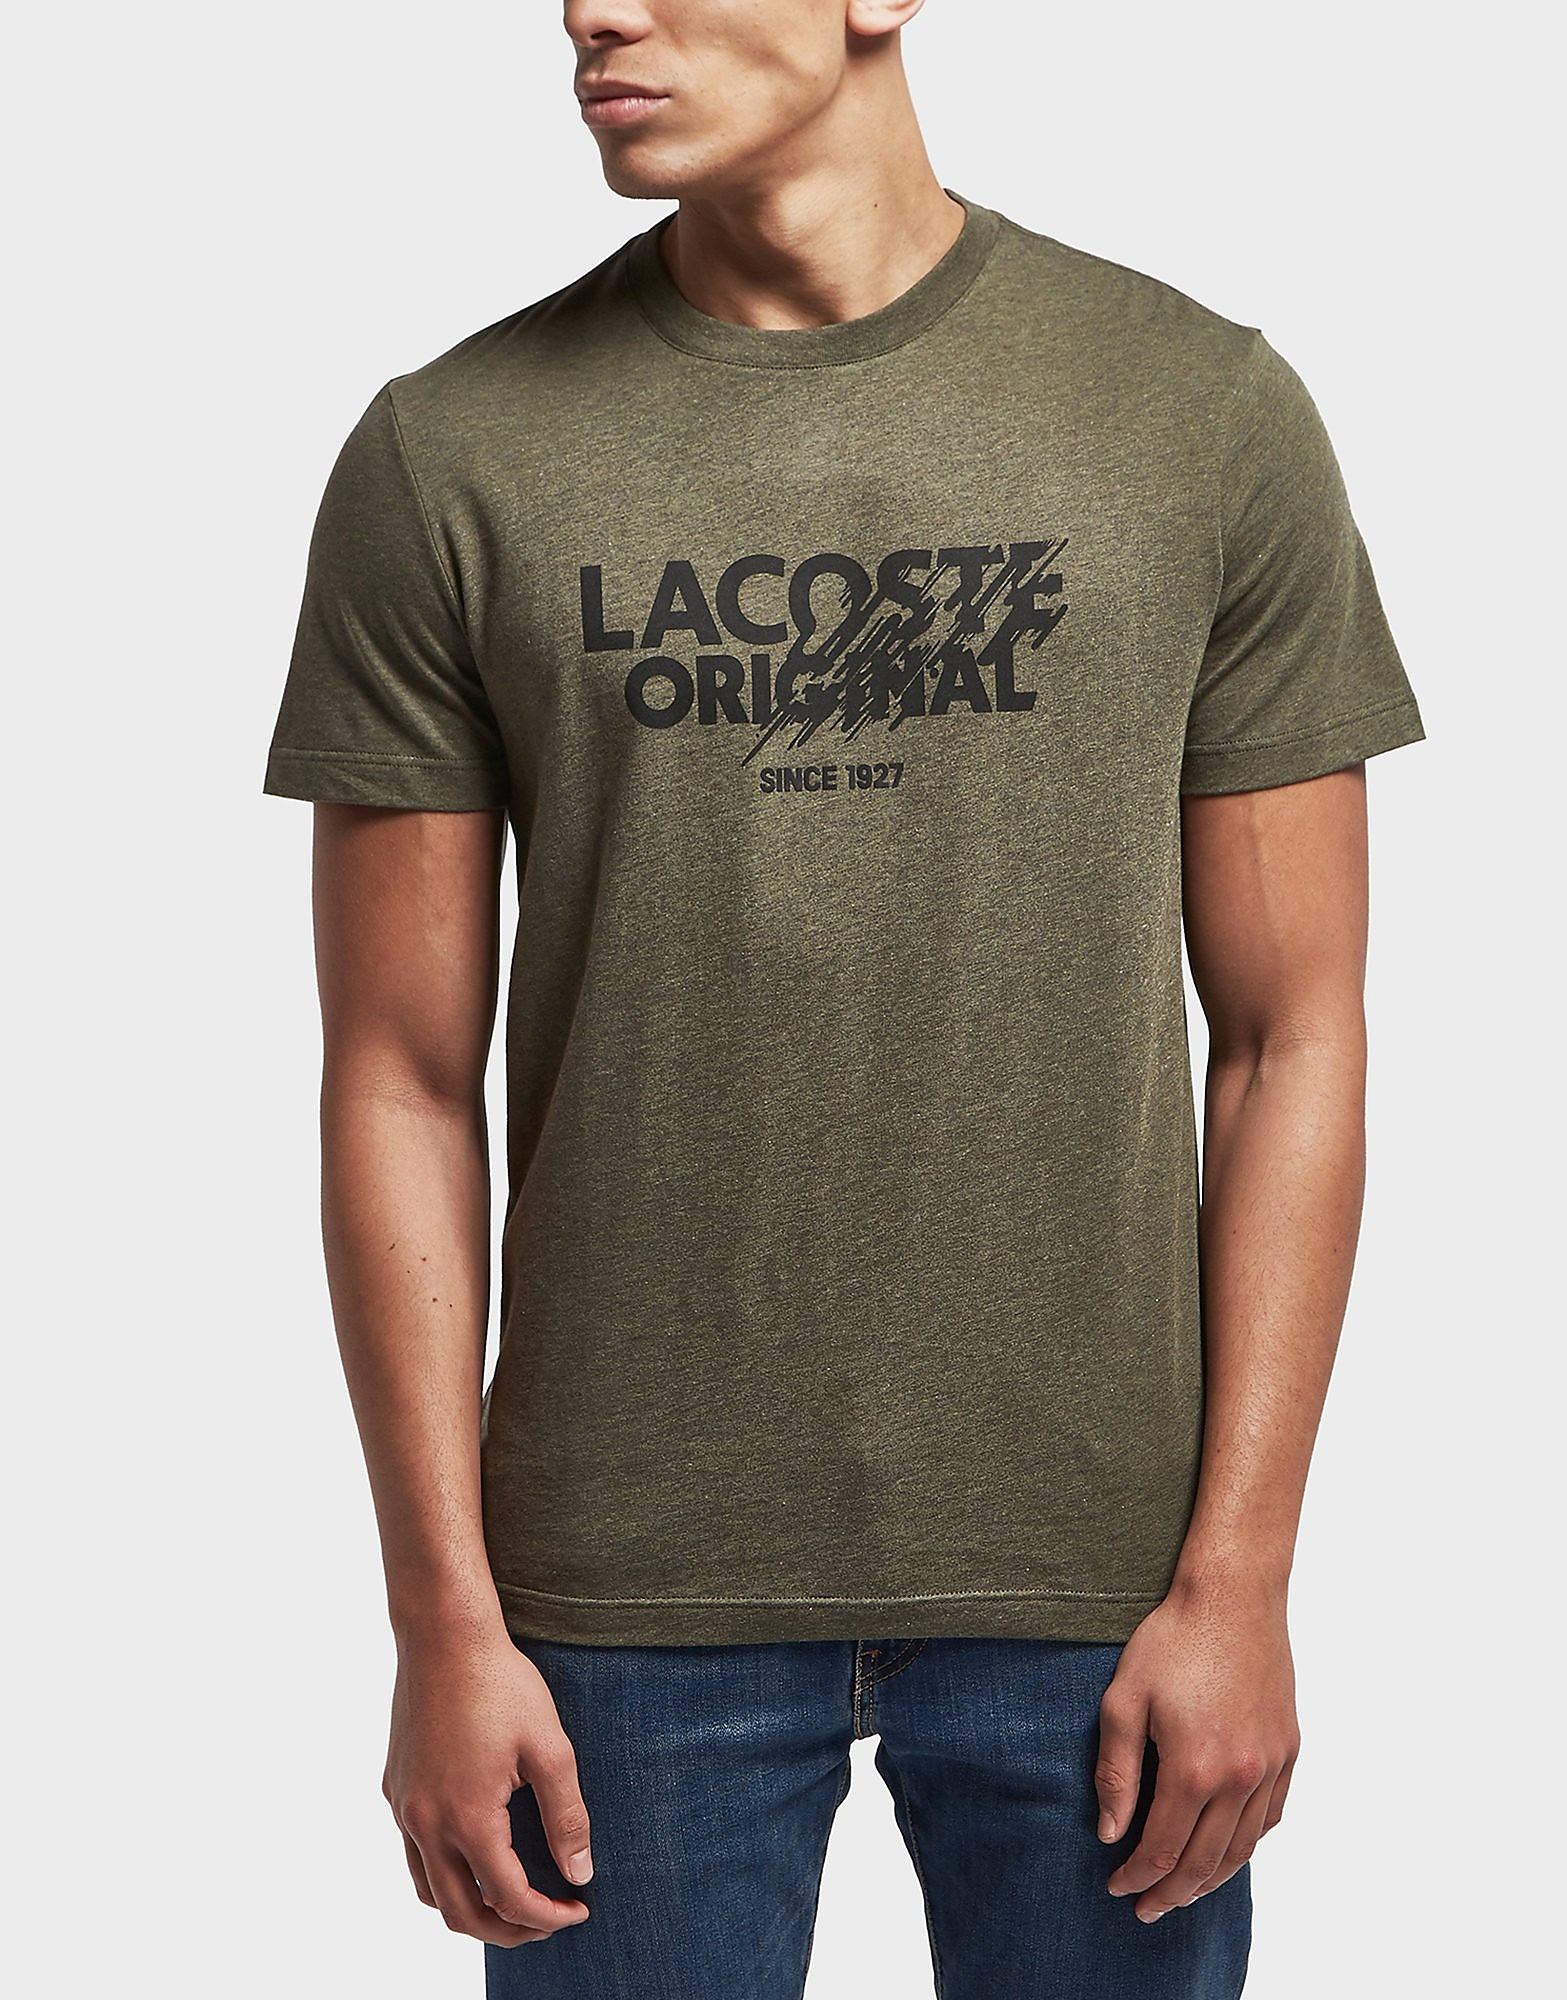 Lacoste Original Logo Short Sleeve T-Shirt